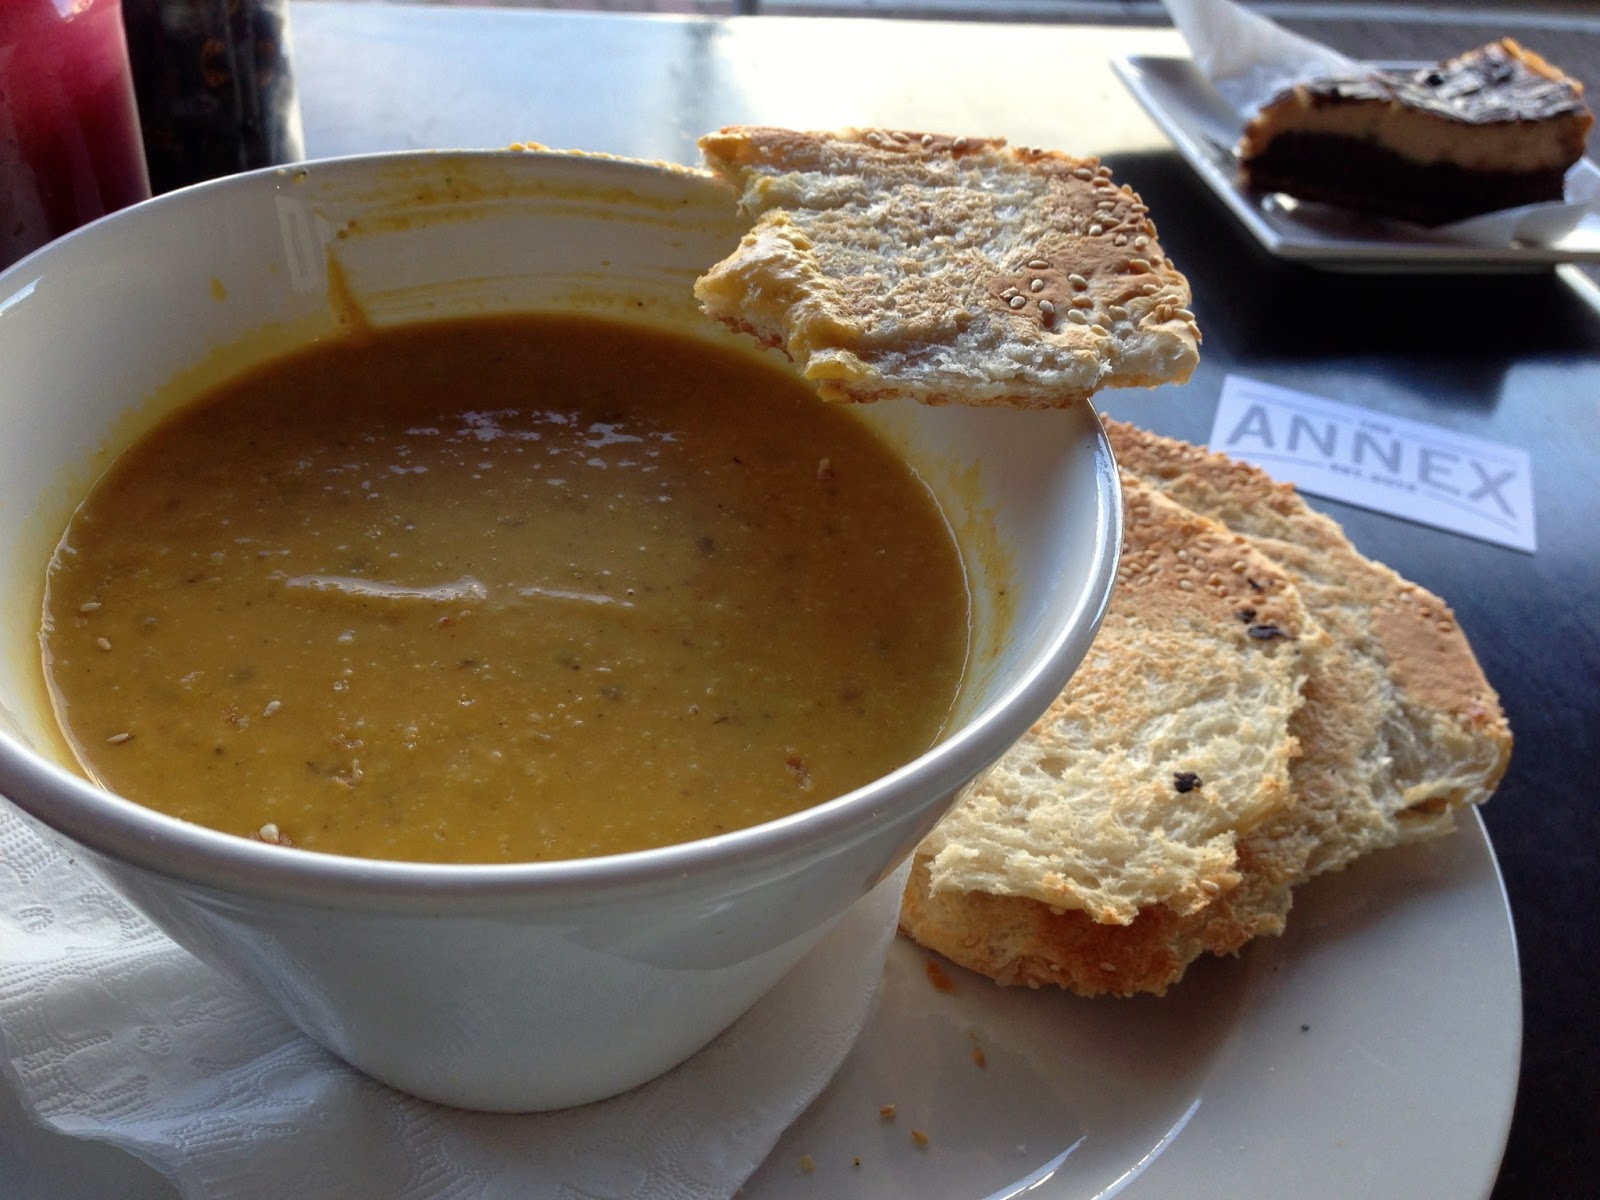 Pumpkin and roasted almond soup - The Annex Cafe, Glenelg